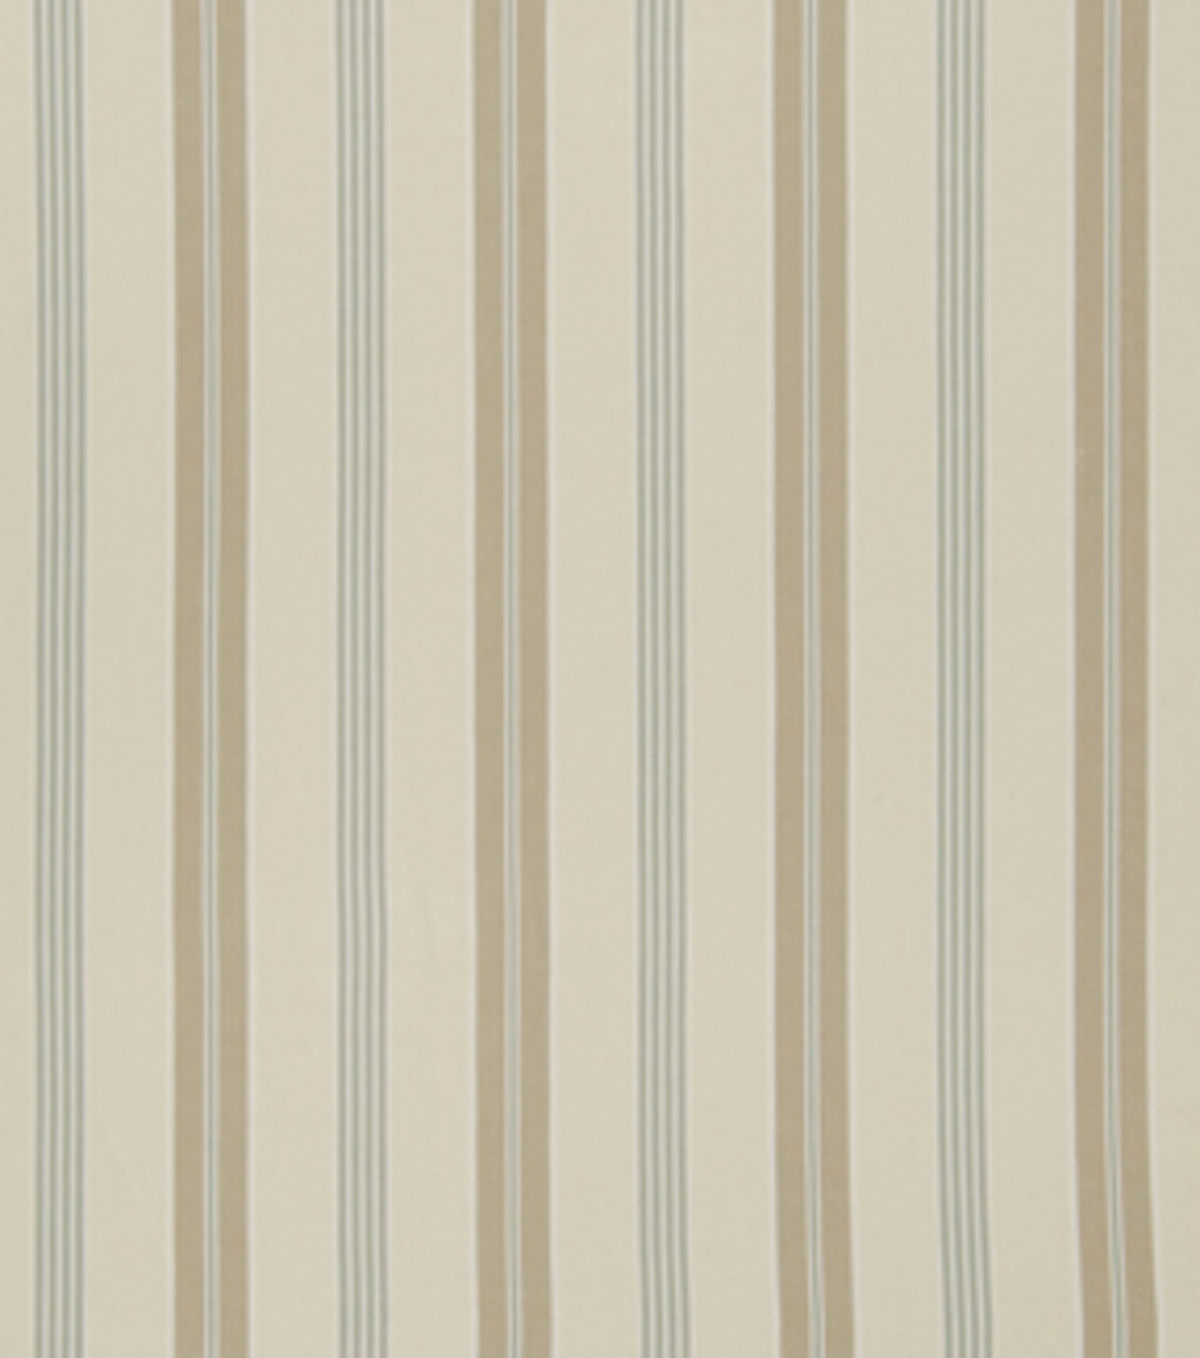 Home Decor 8\u0022x8\u0022 Fabric Swatch-French General Glamorous La Mer